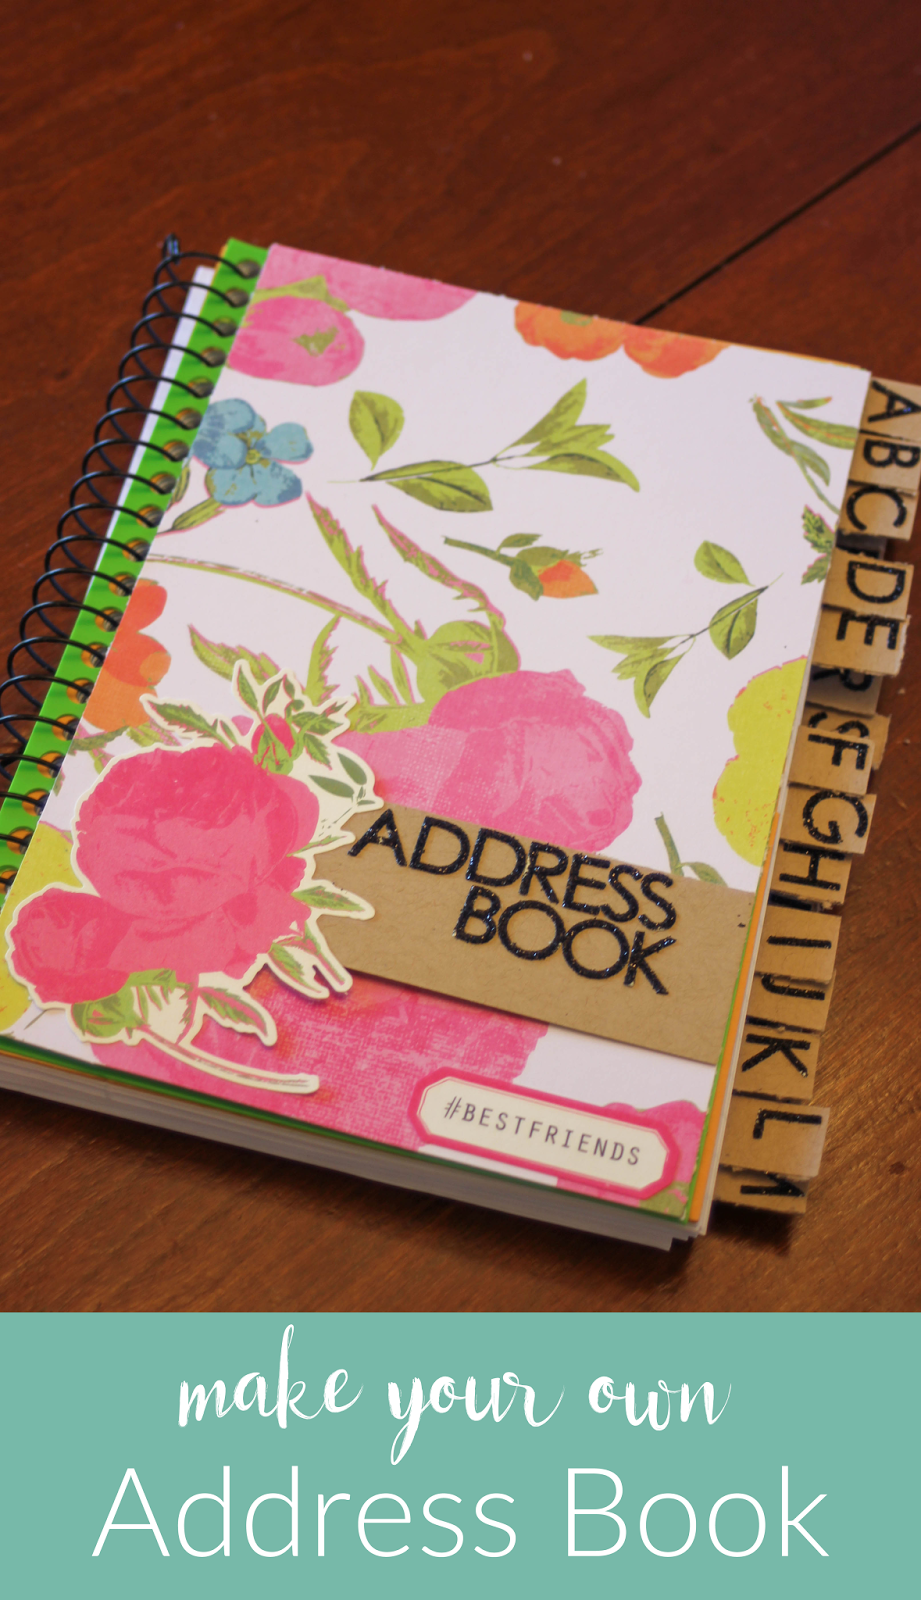 How to make scrapbook using recycled materials - Diy Address Book Little City Adventures